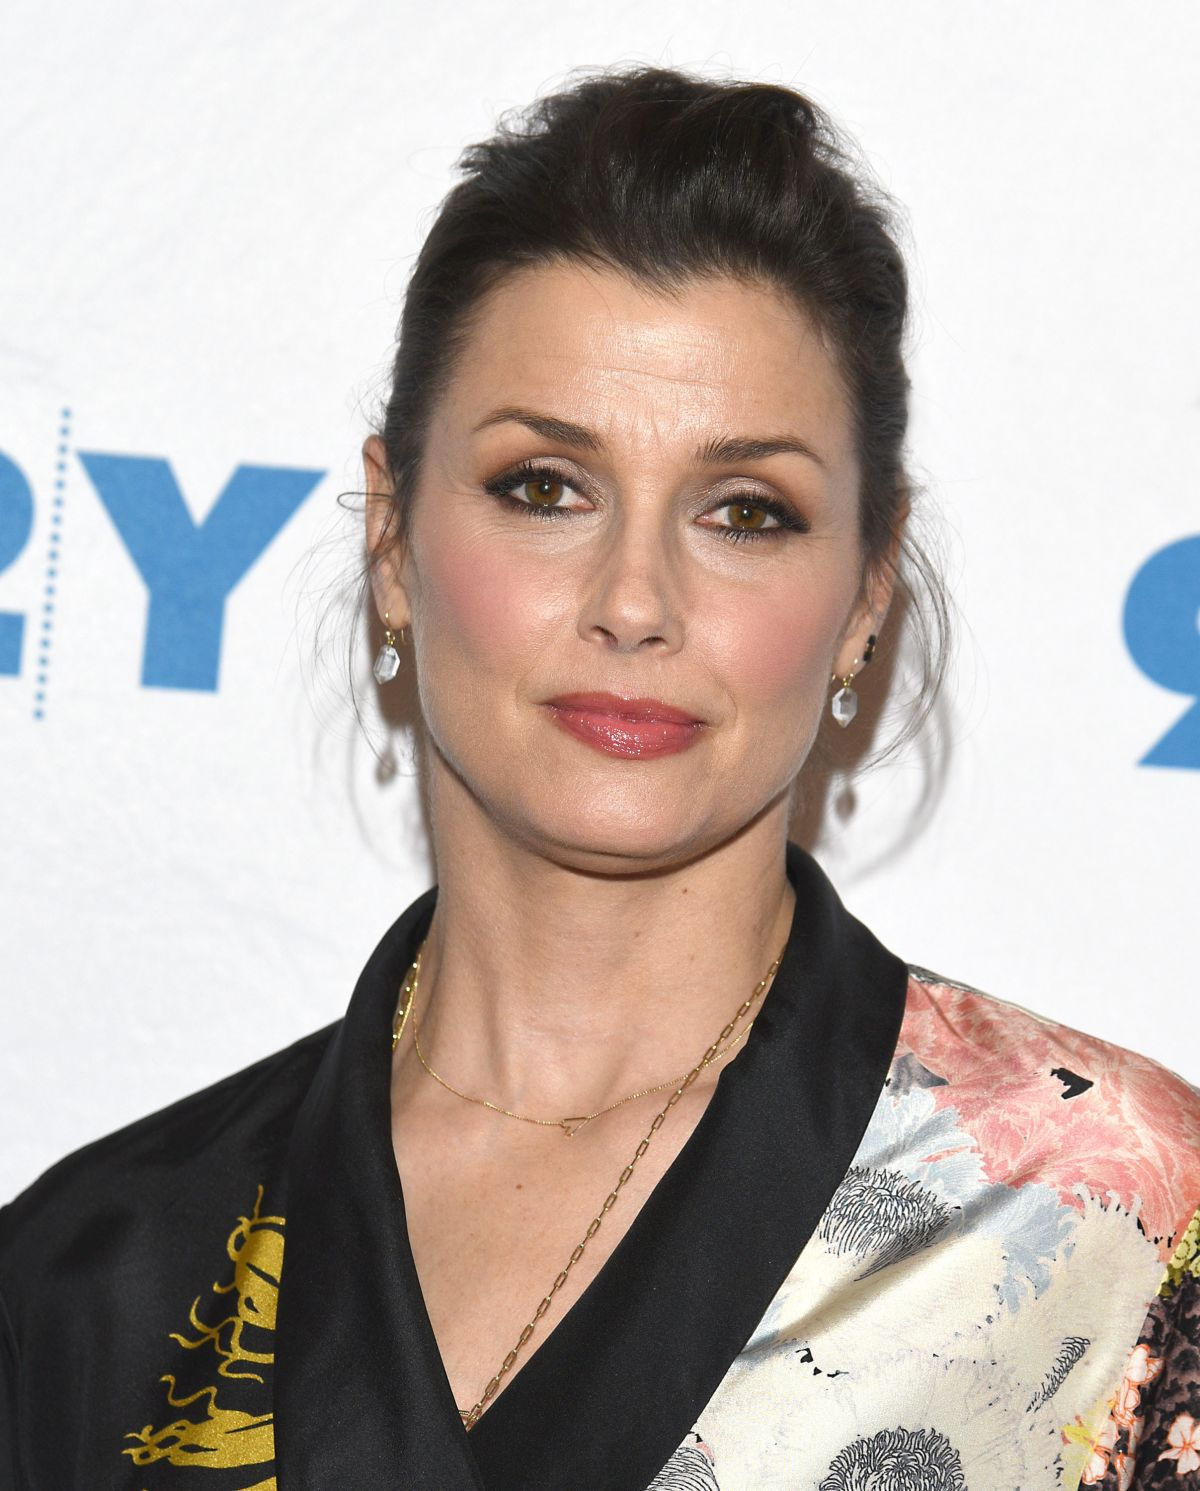 Bridget Moynahan Blue Bloods